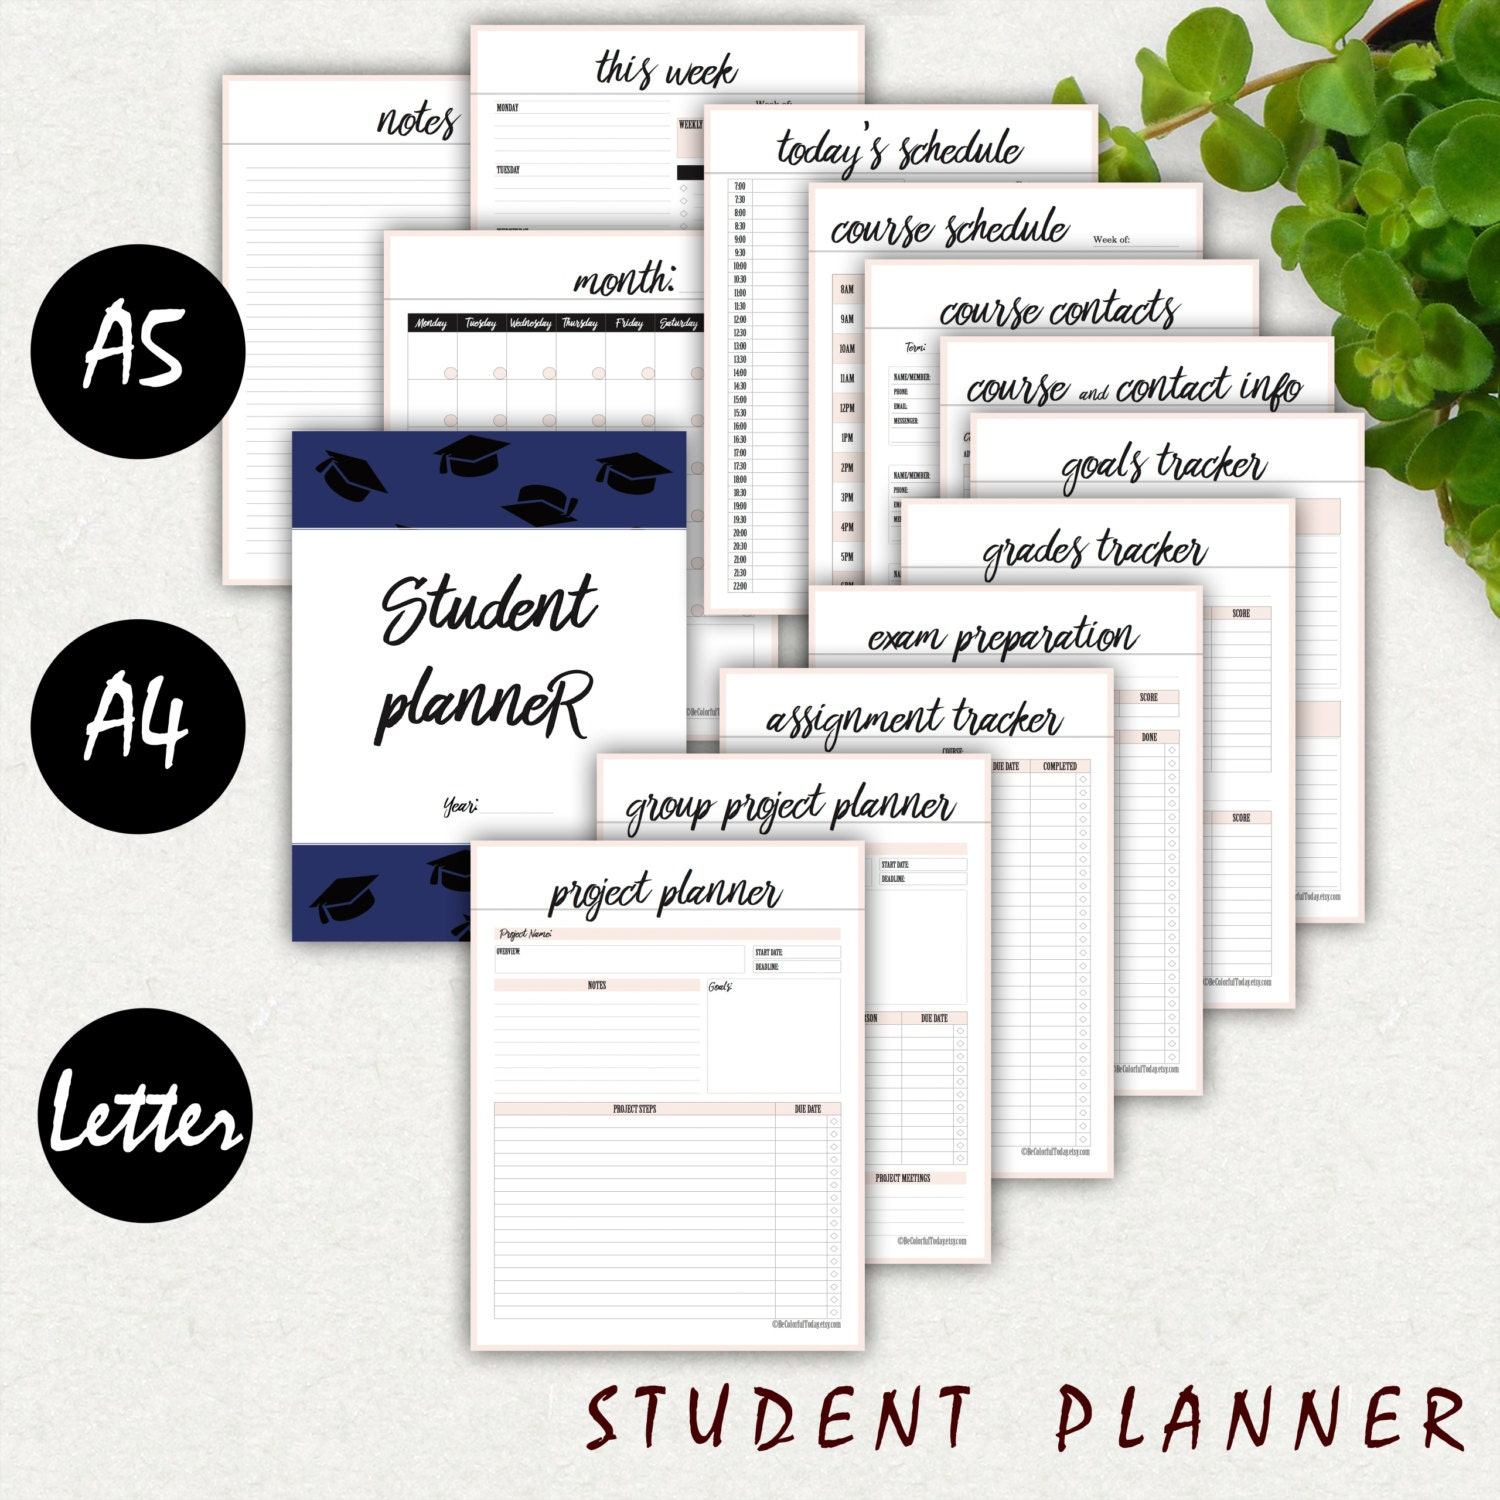 college student planner printable a5 a4 letter 2017 high